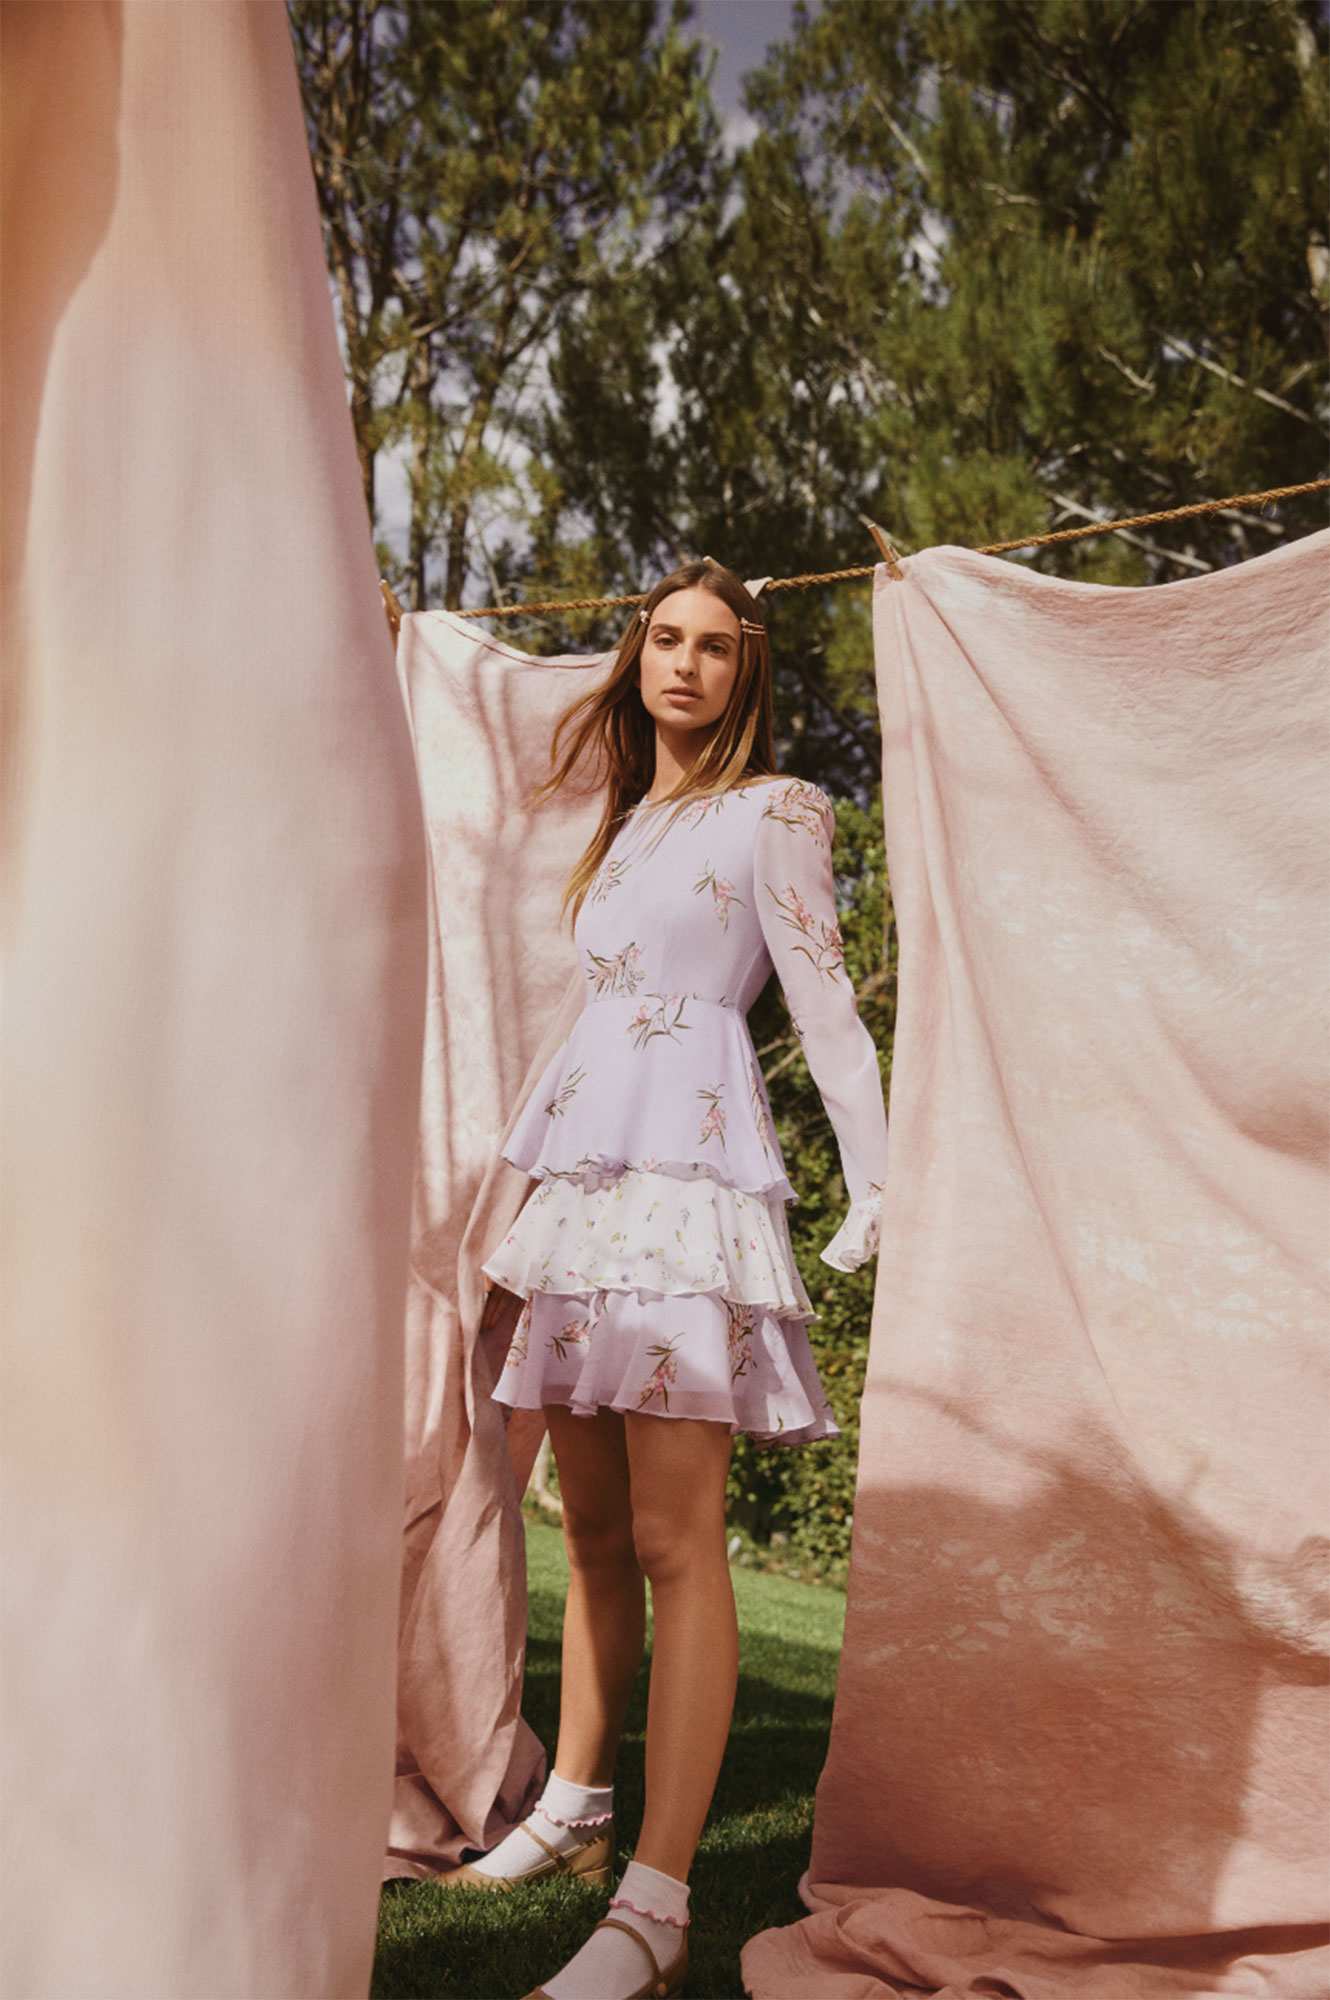 """Talita von Furstenberg - """"I was really inspired by nature and my own personal style,"""" von Furstenberg dished. """"Growing up in L.A., I always wore dresses and super easy, summery clothes... stuff that you could kind of throw on and dress up however you want. That's kind of what TVF for DVF is and you can wear the pieces in the summer, you can wear them on the beach or you can also wear them on the street and you don't need to think about it too much. I think the TVF for DVF girl is a girl who wants to look comfortable, confident and happy and is really effortless, on the go, flirty and fun, but still feminine,"""" she explained."""